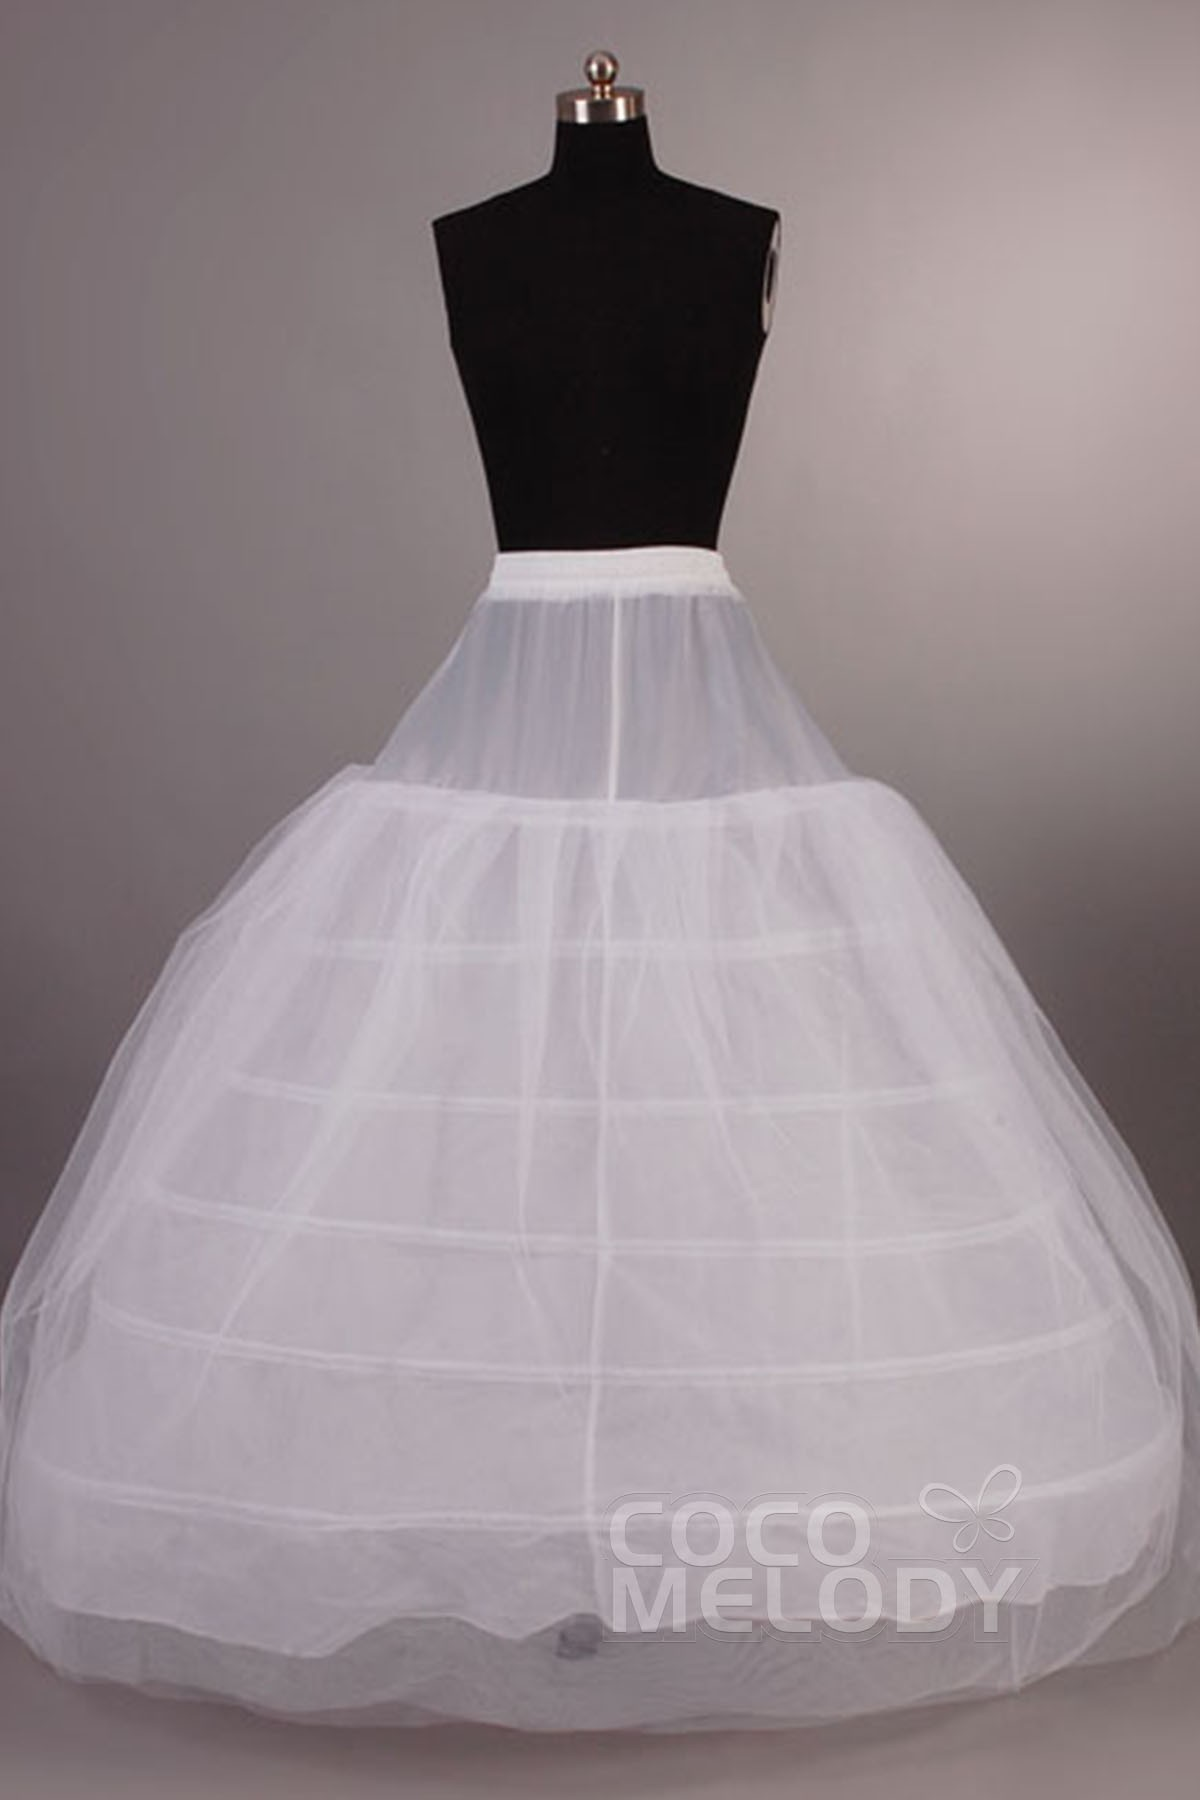 Cocomelody: Ball Gown Floor-Length Tulle Wedding Petticoats CP001300B